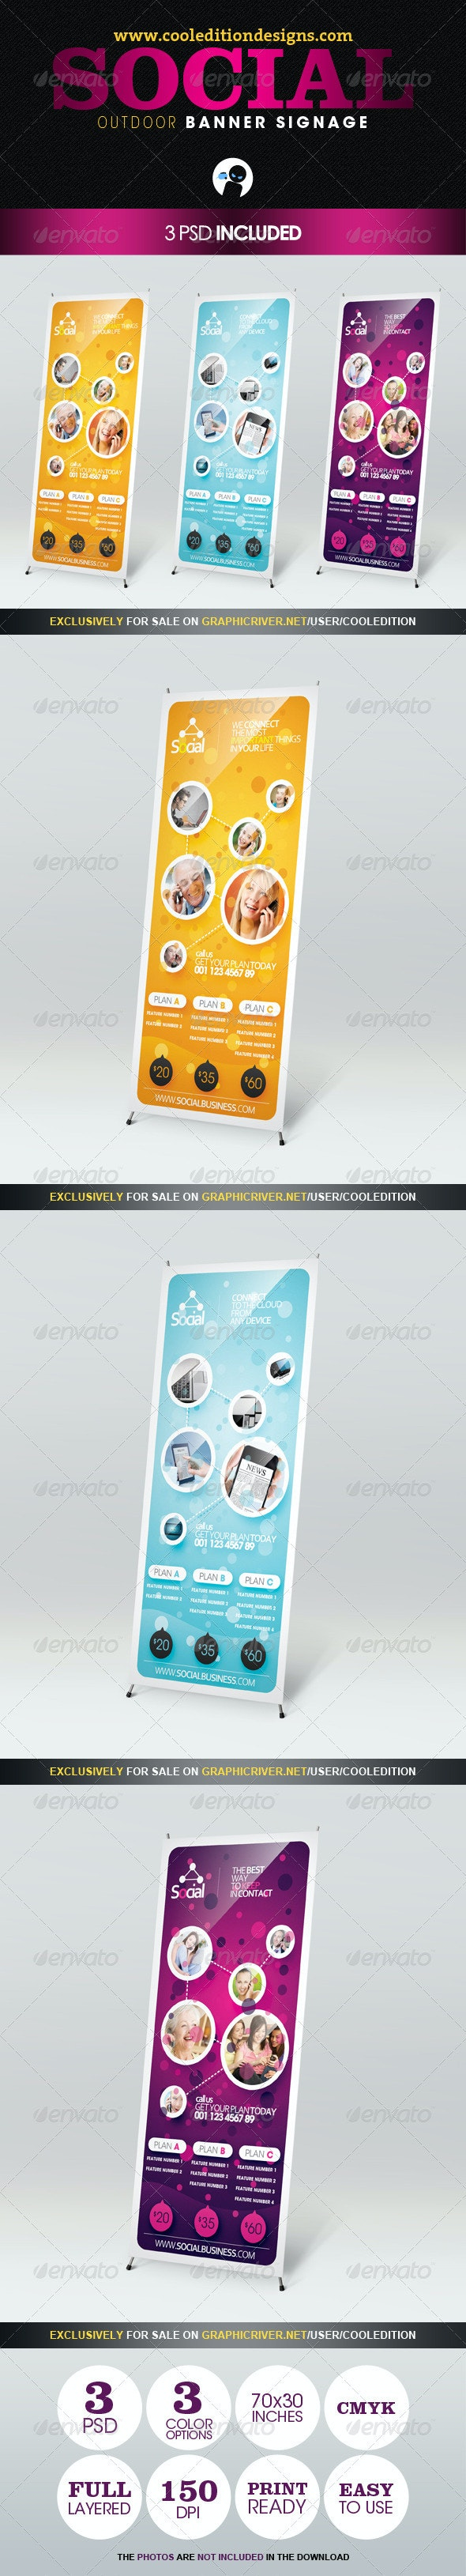 Social - Outdoor Banner Signage - Signage Print Templates